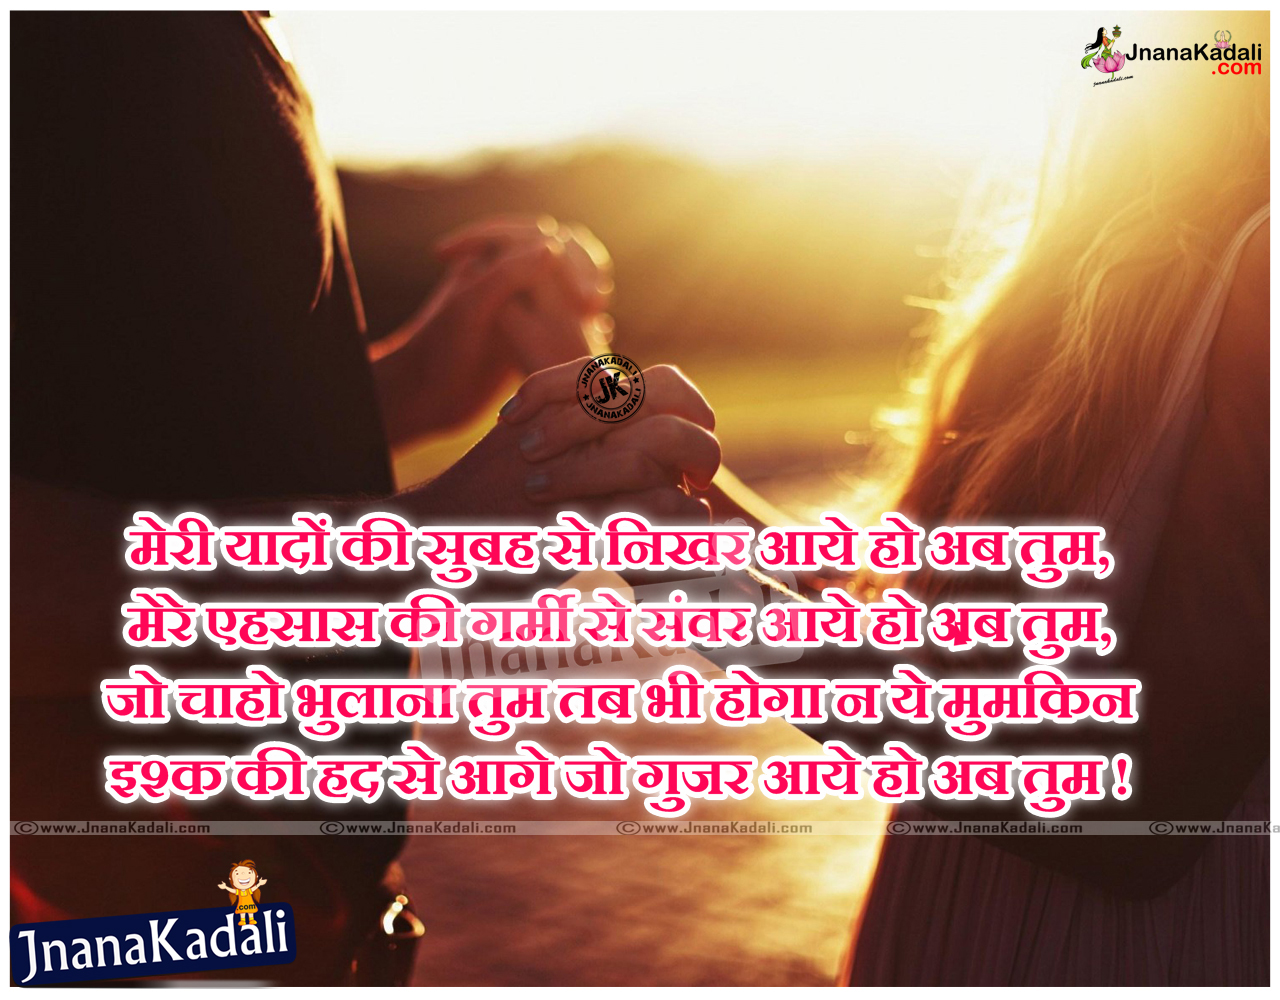 Famous True Love Quotes Hindi Heart Touching Romantic Love Shayari With Pictures Jnana